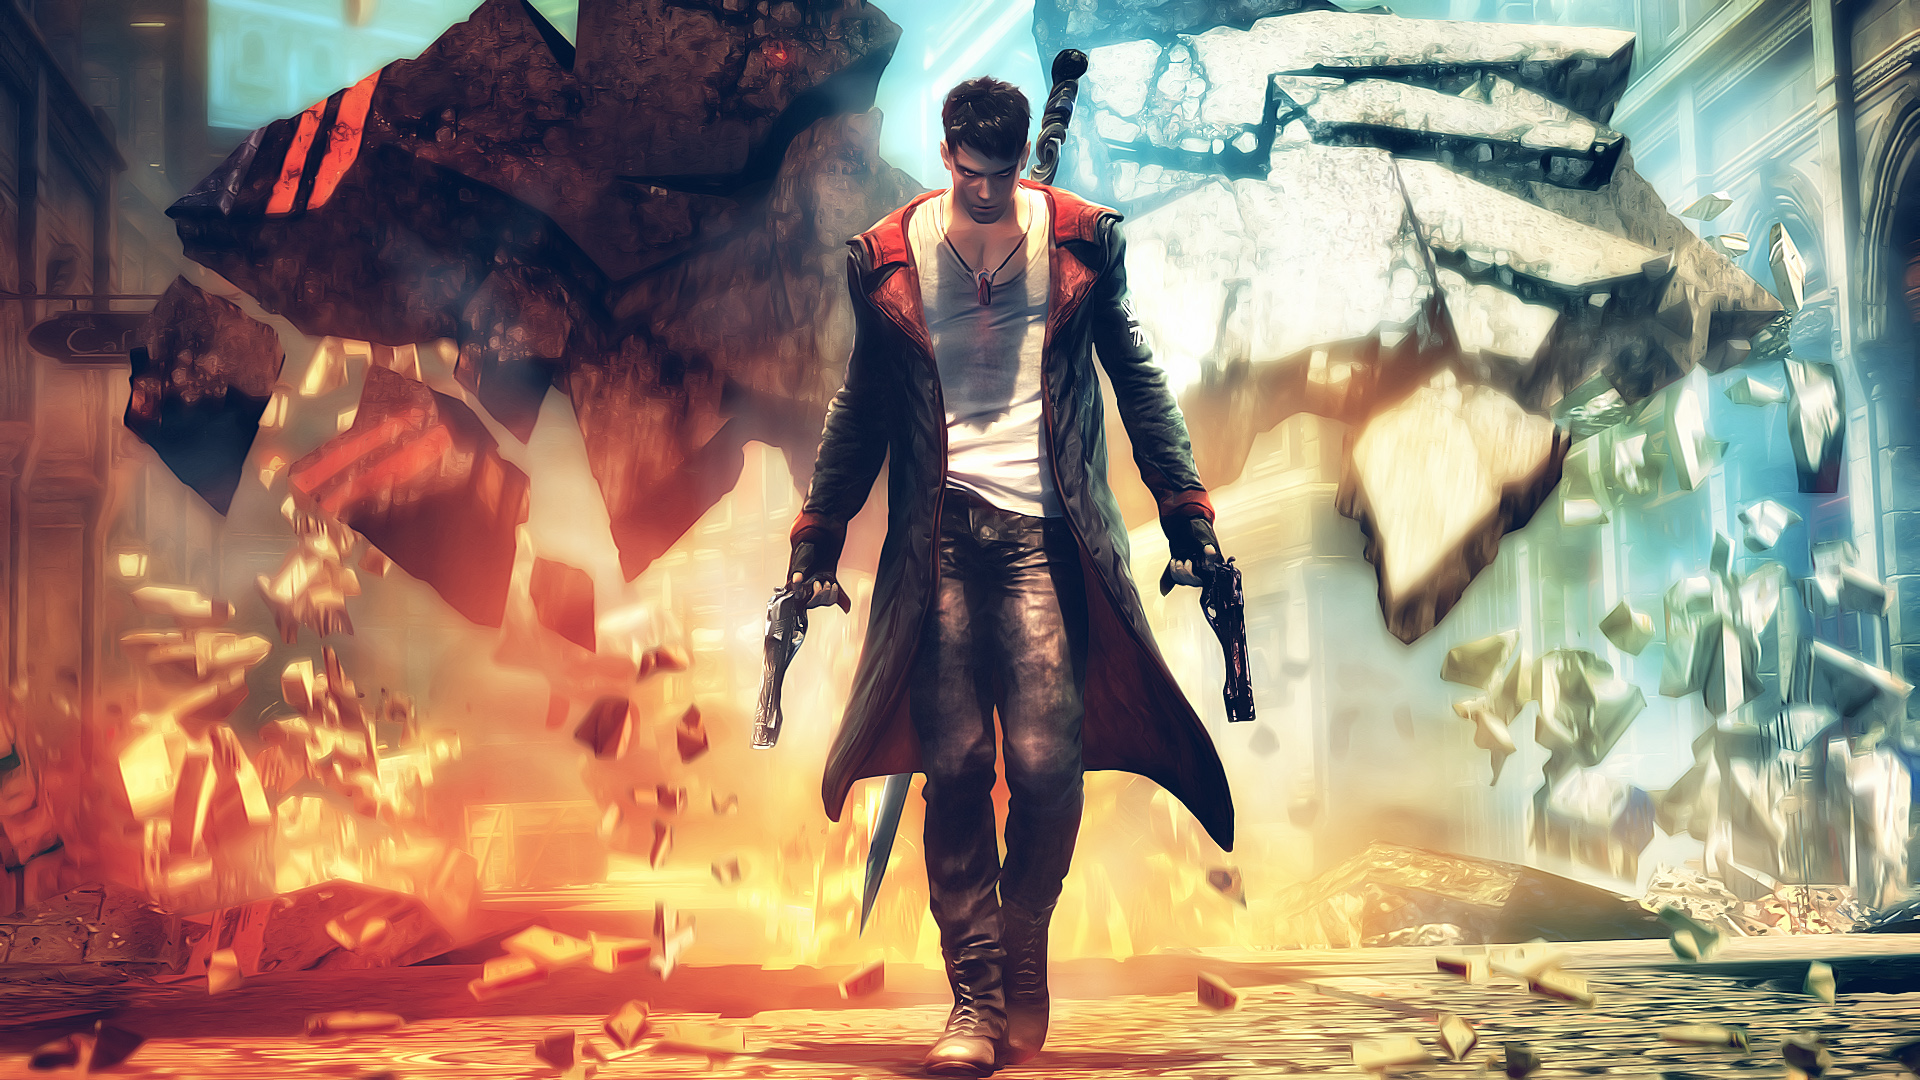 devil may cry wallpapers 1 hd 1080pjpg 1920x1080